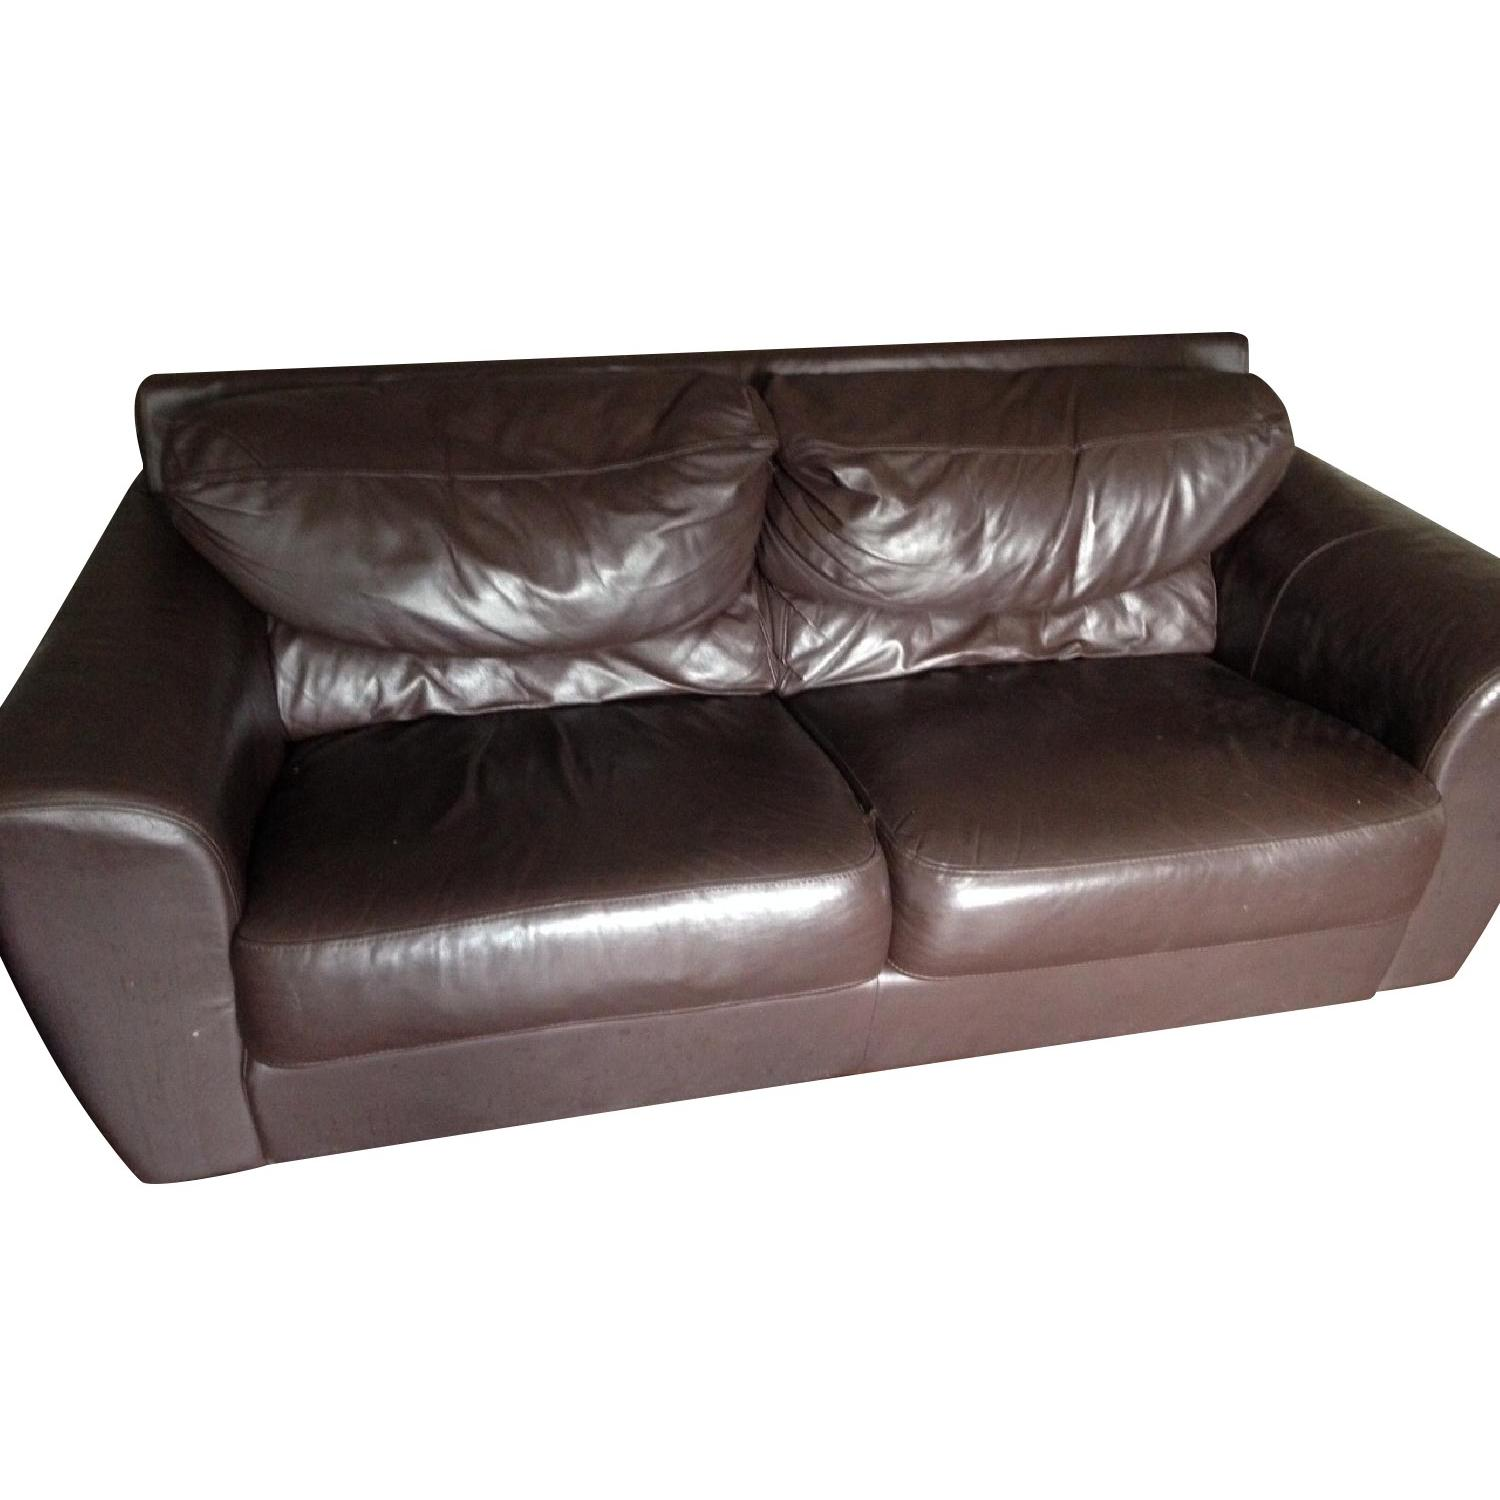 Ikea Leather Loveseat/Couch - image-0